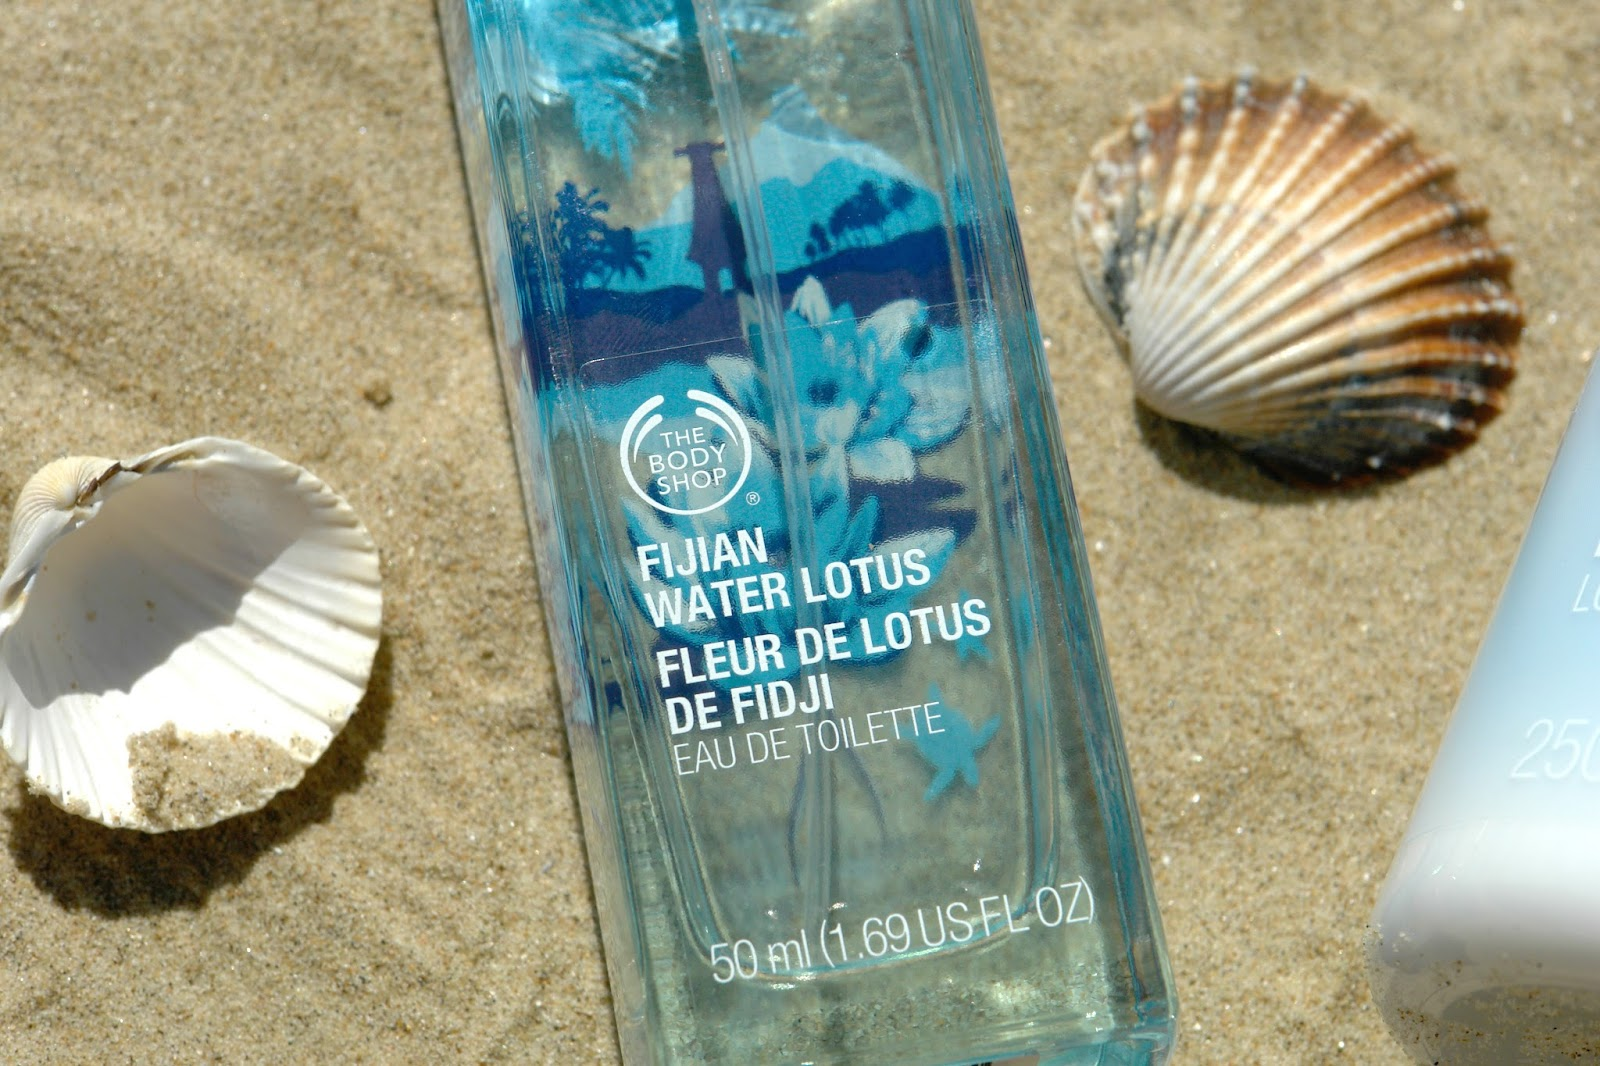 The Body Shop Fijian Water Lotus range, The Body Shop, perfume, summer, beauty, review,  Fijian Water Lotus Eau de Toilette, Fijian Water Lotus Perfume Oil, Fijian Water Lotus Body Lotion, beauty blogger, UK blog,  Fragrance Mist, Shower Gel and Body Butter, Fijian Water Lotus Range